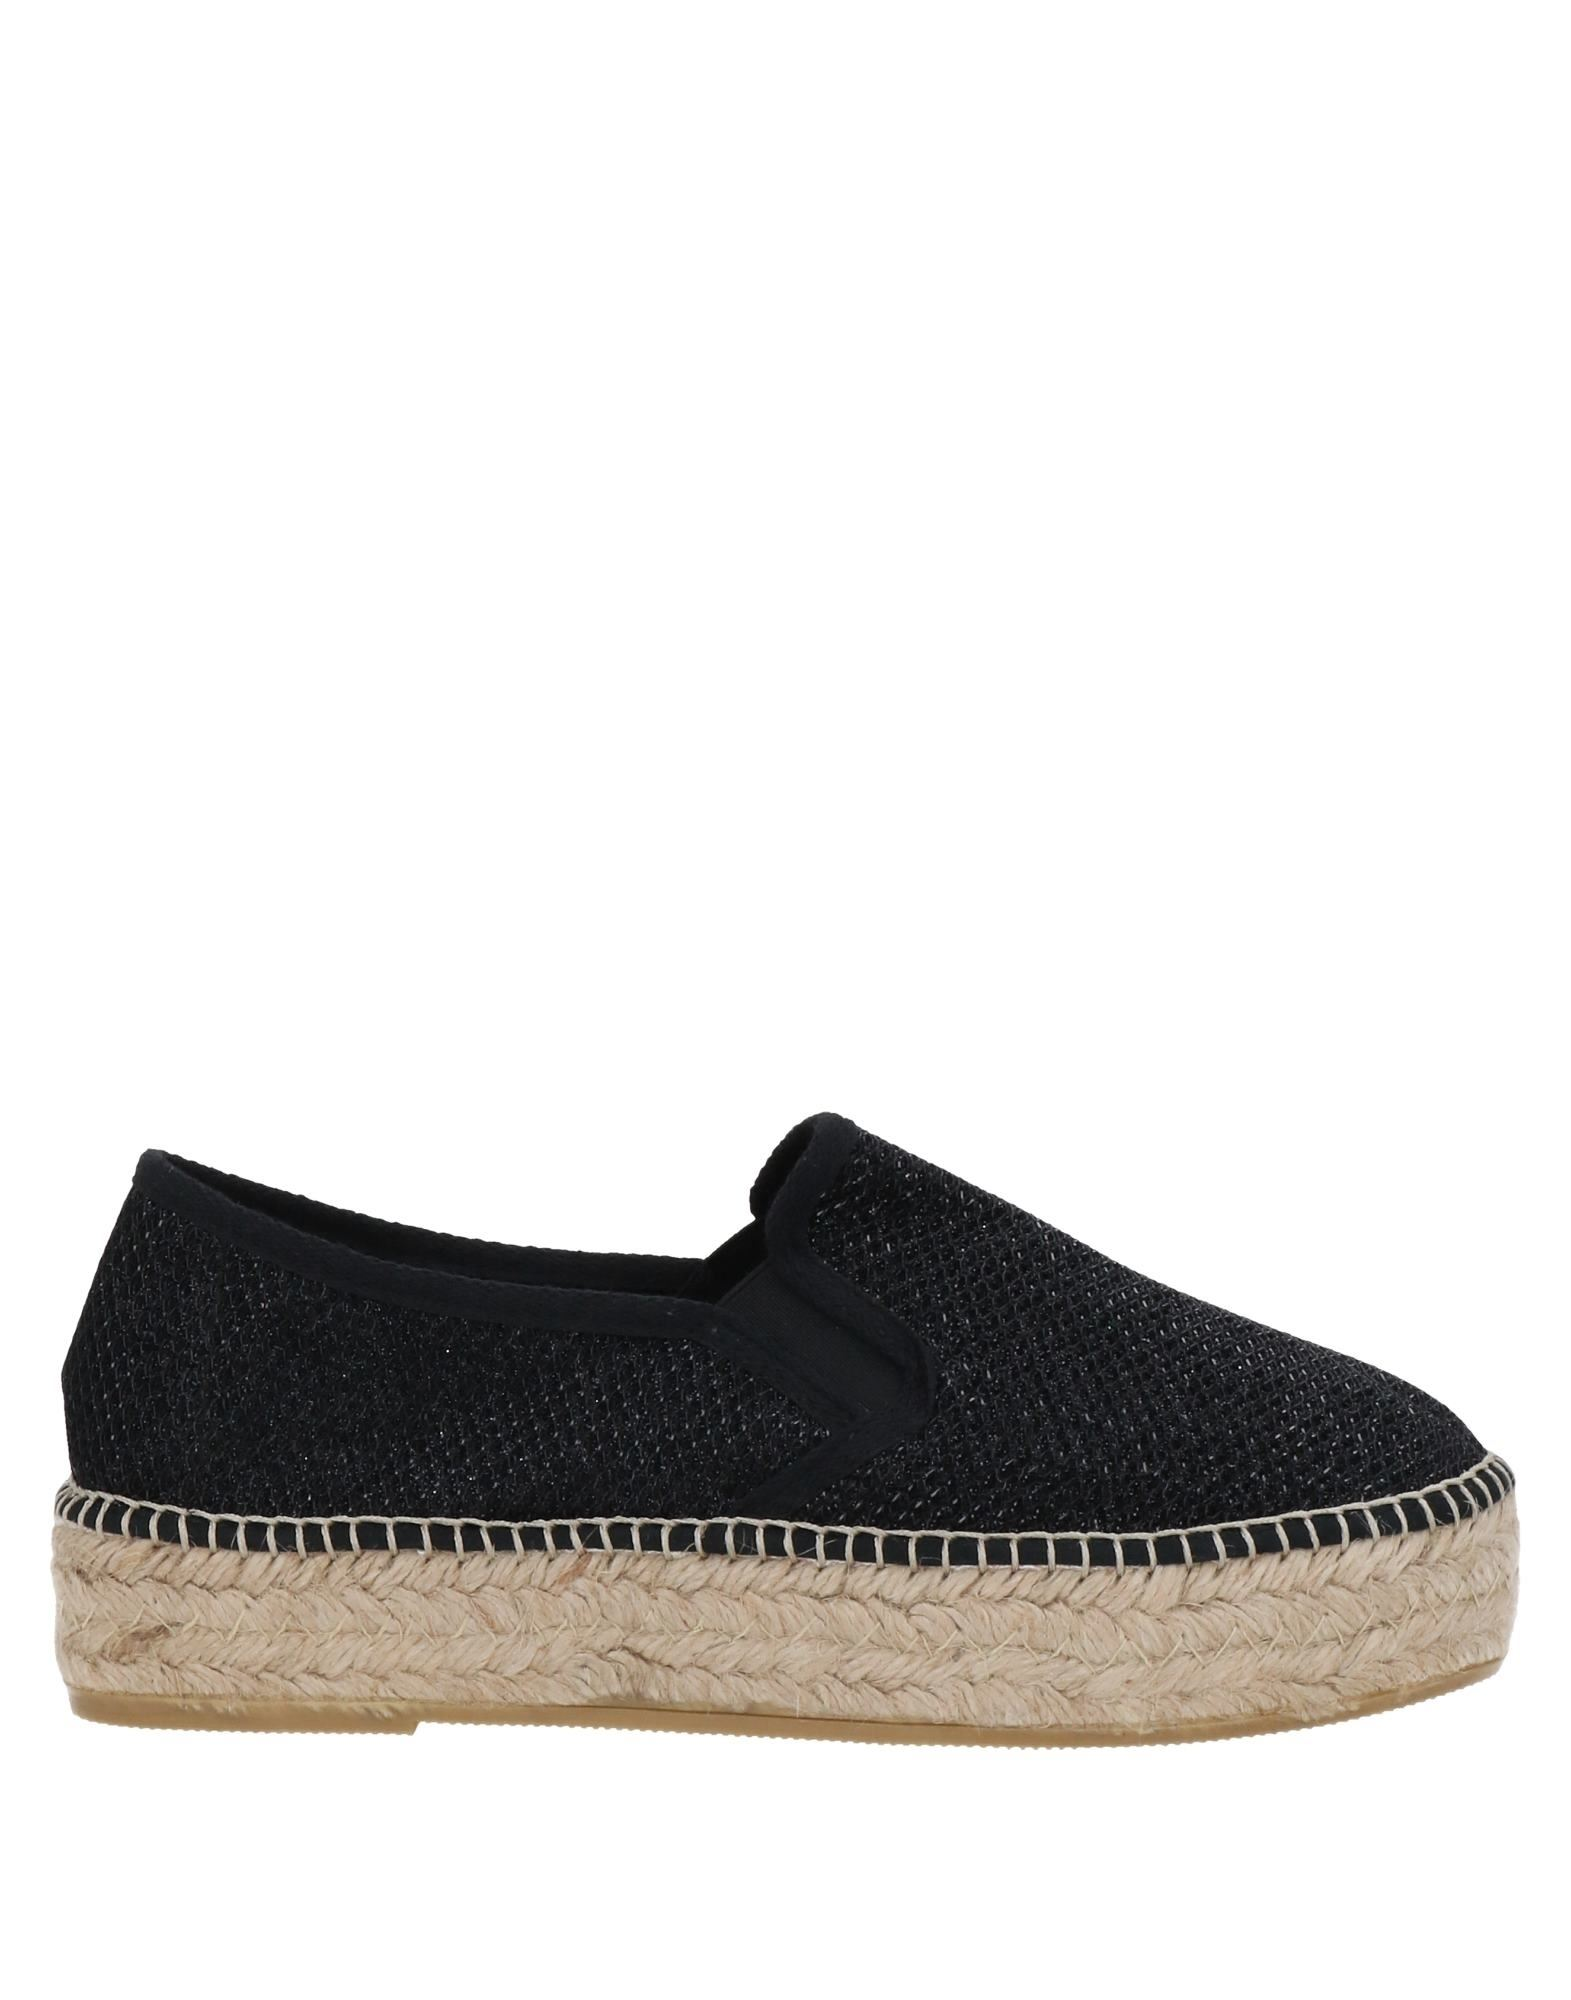 TONI PONS Espadrilles. techno fabric, solid color, round toeline, flatform, rope wedge, fully lined, rubber sole, no appliqués. Textile fibers